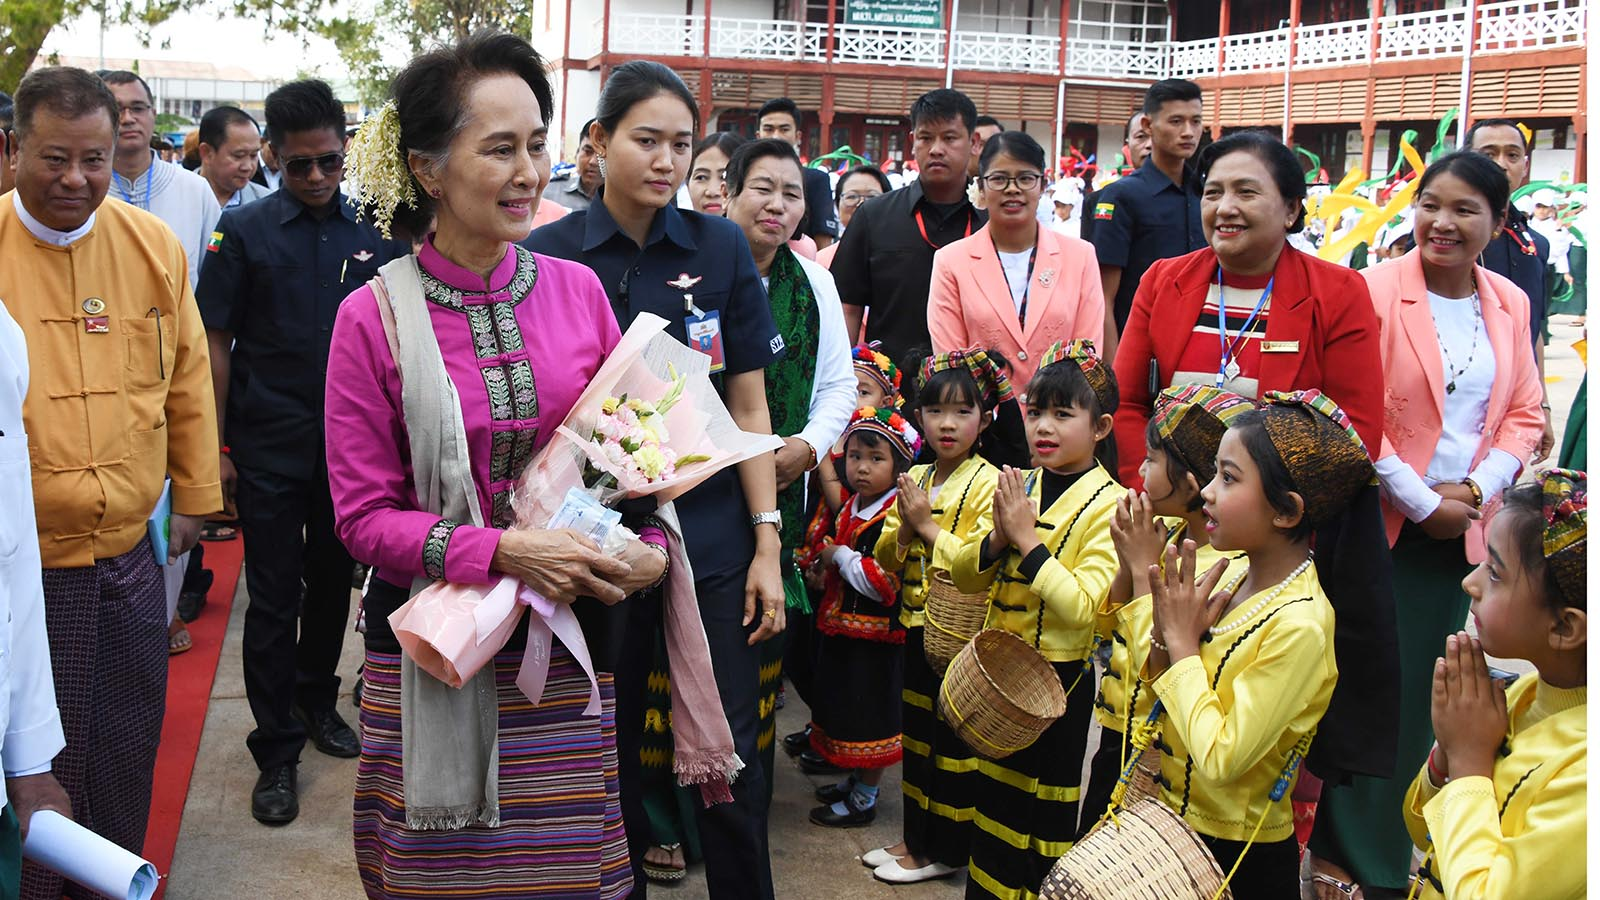 State Counsellor Daw Aung San Suu Kyi is welcomed by school children at No.1 High School in Taunggyi Township in southern Shan State.Photo: MNA